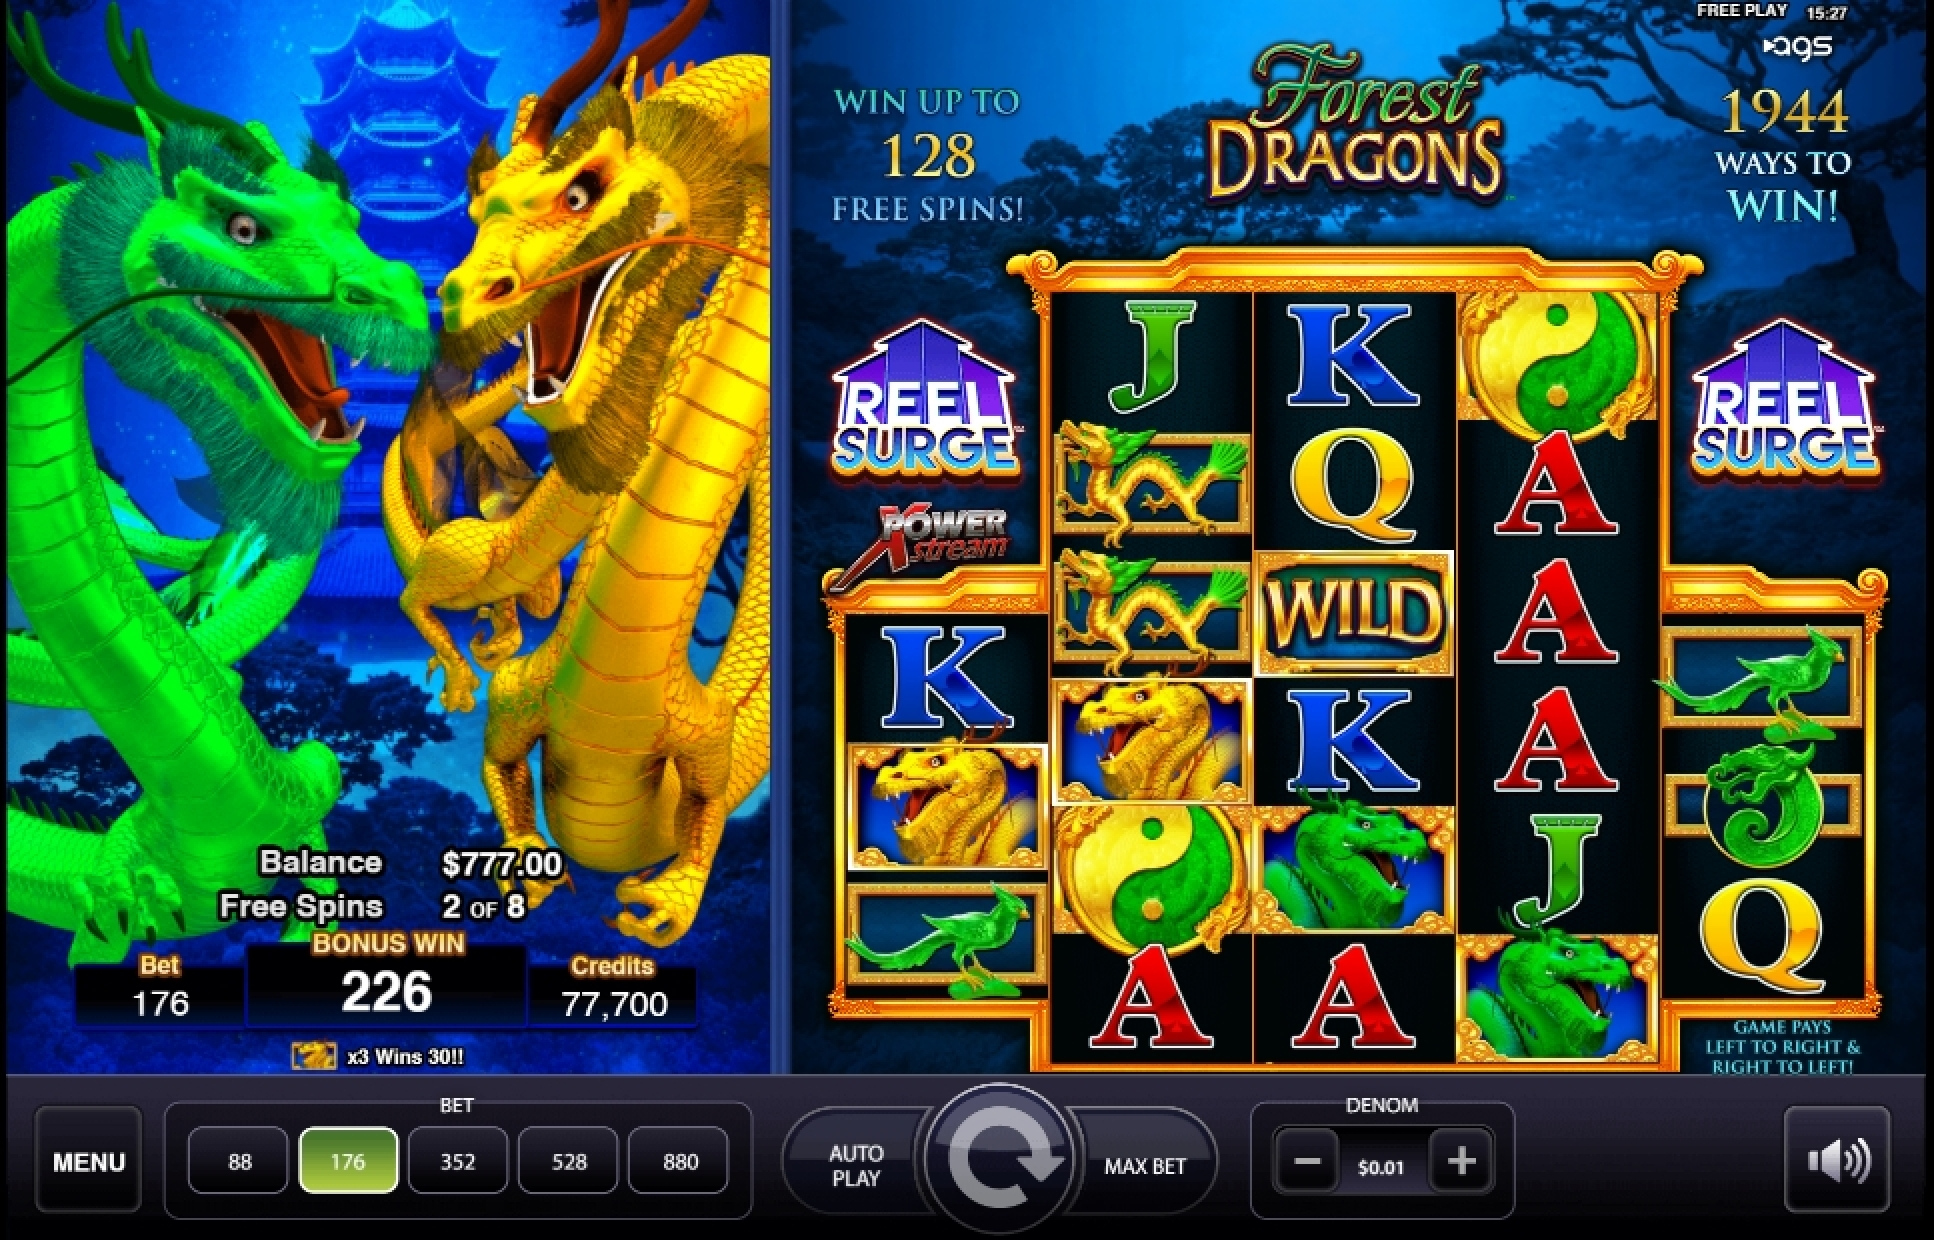 Reels in Forest Dragons Slot Game by AGS